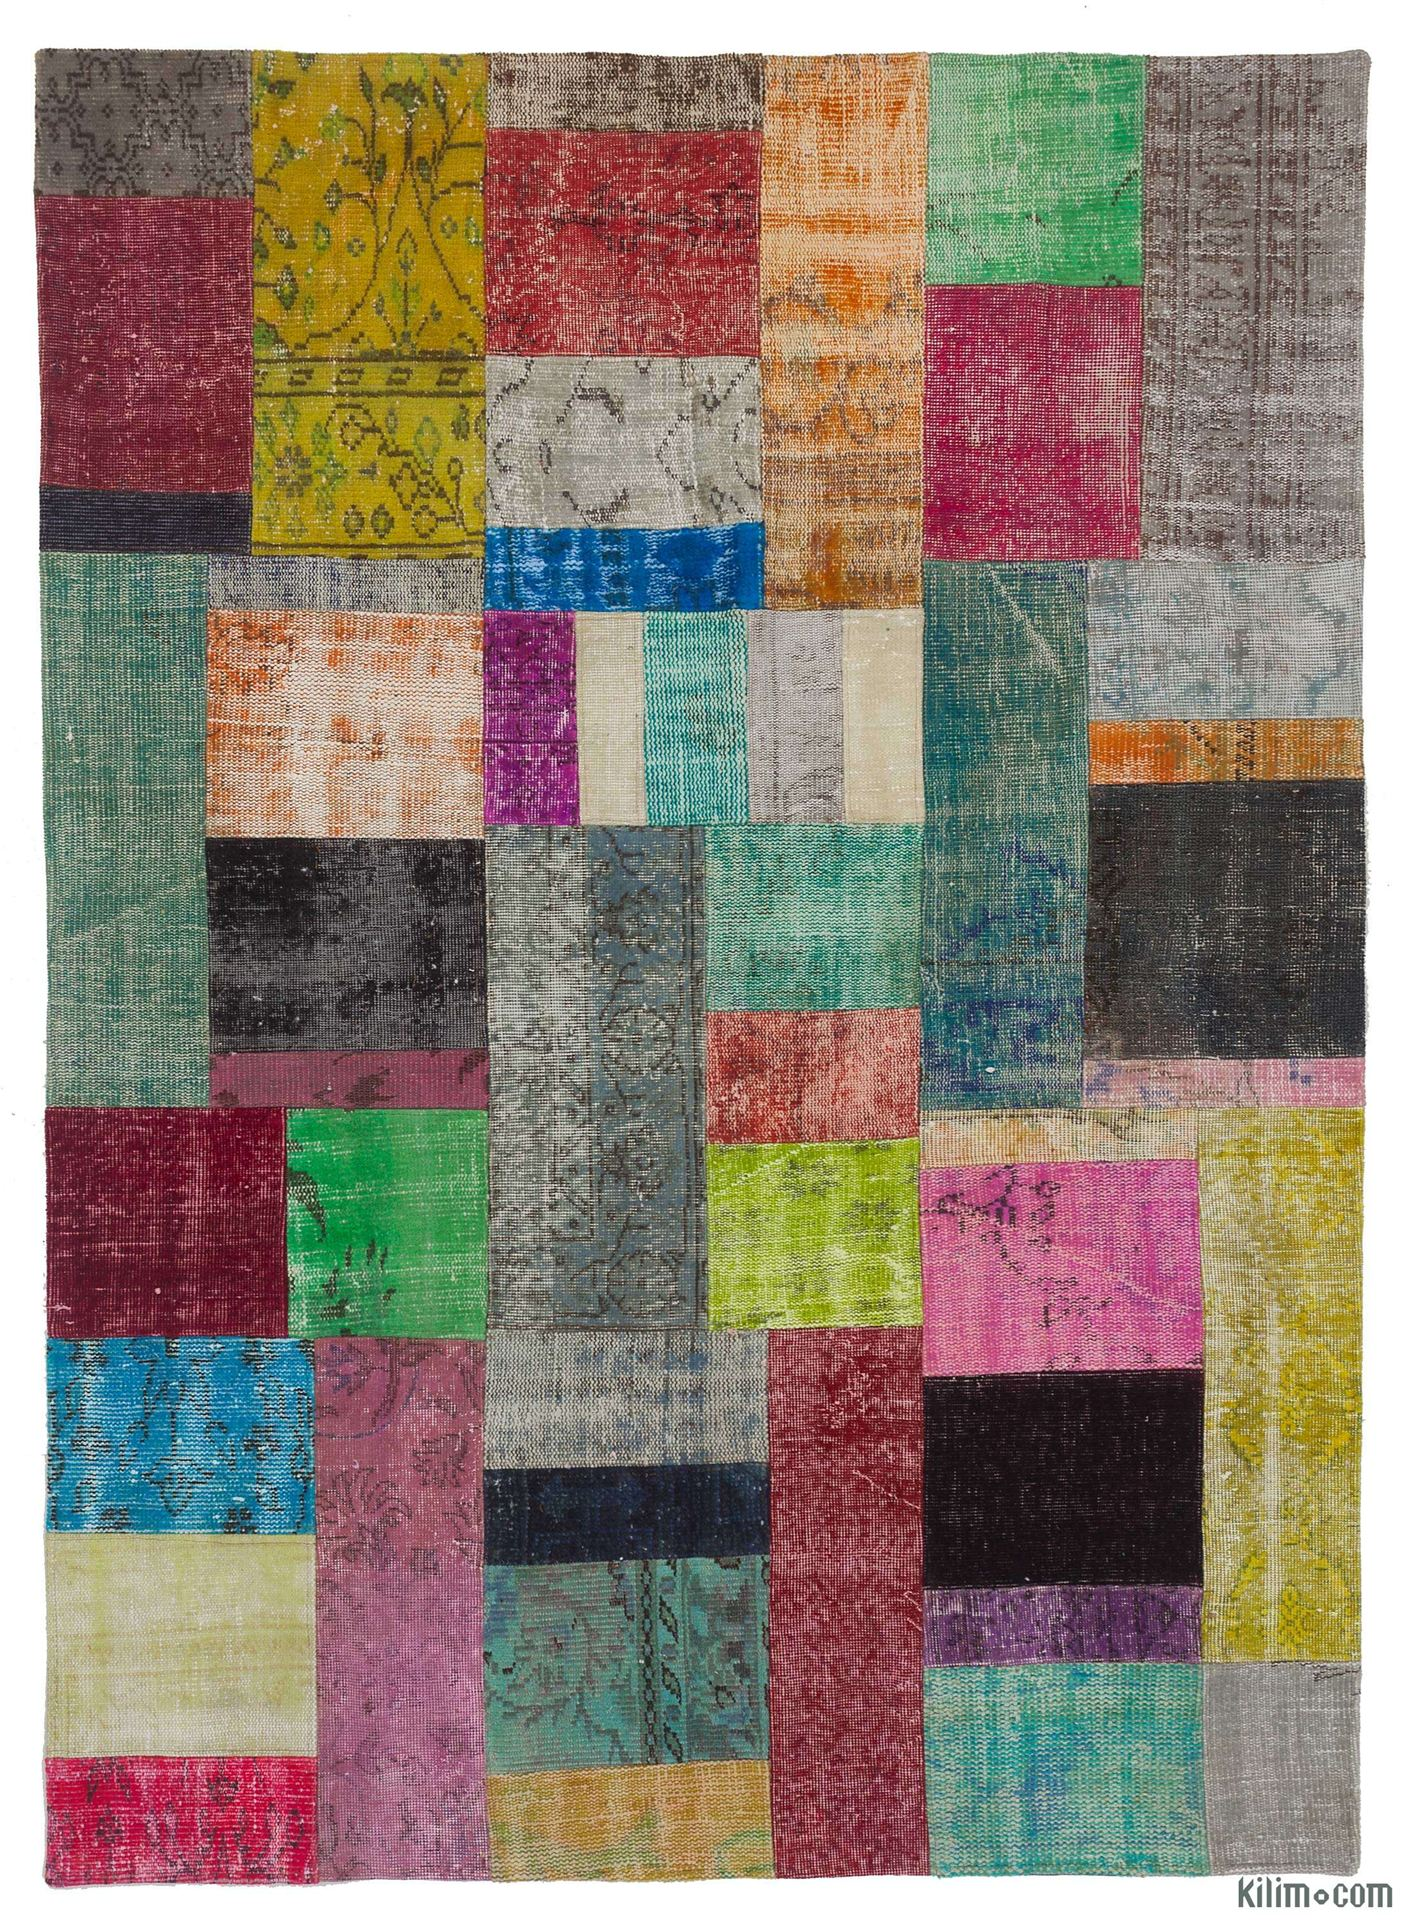 k0010665 - over-dyed turkish patchwork rug. overdyed vintage rugs